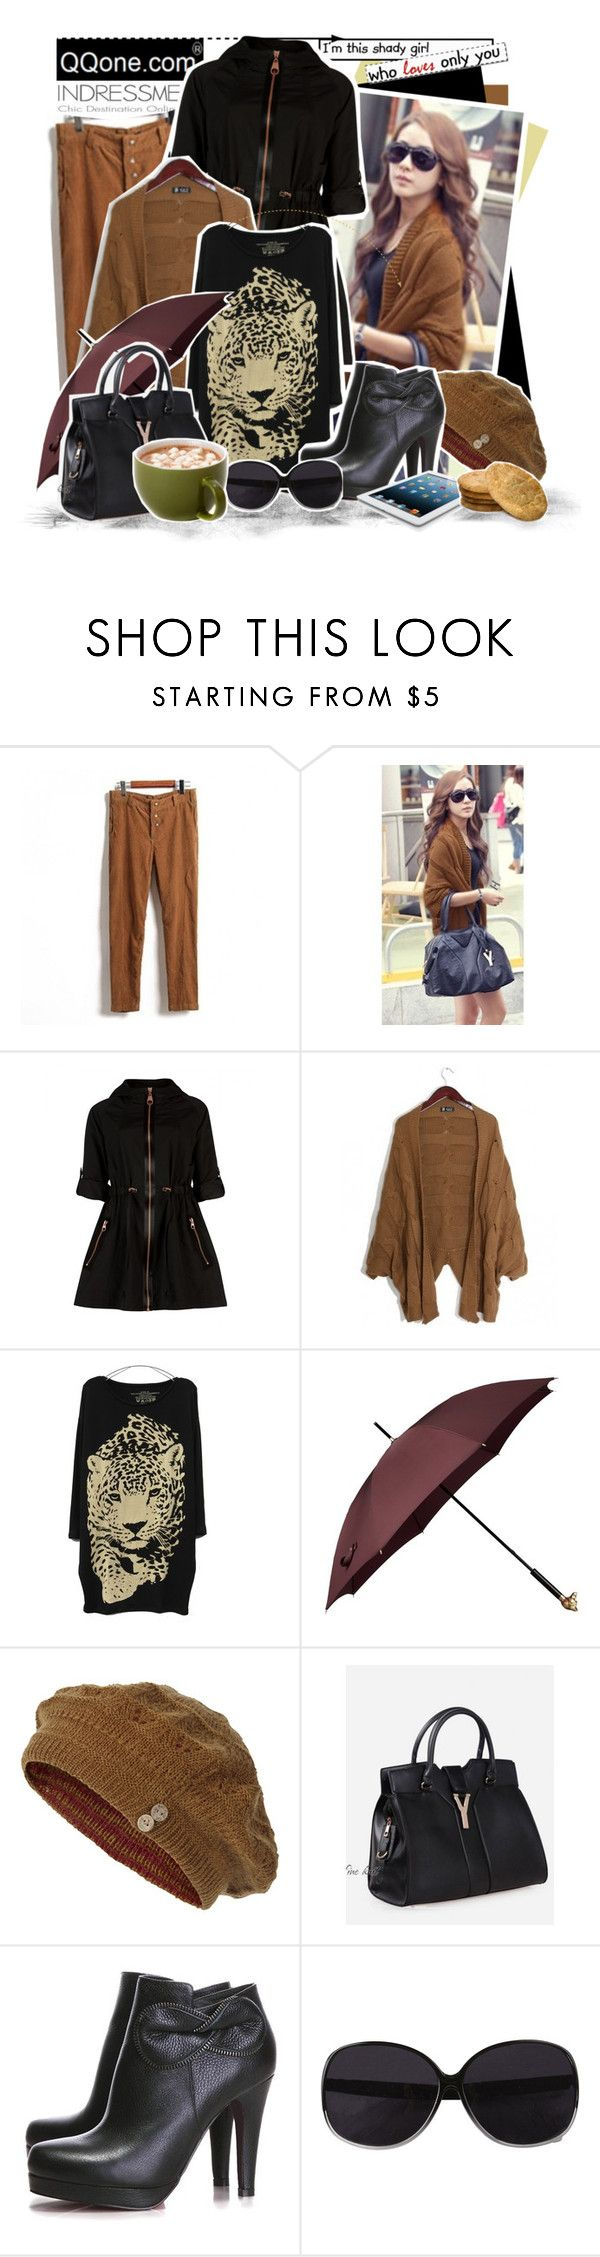 """Shady Girl!"" by keti-lady ❤ liked on Polyvore featuring Ted Baker, Burberry, Fat Face, VILA, ankle boots, cloche hats, black, 2012, indressme and sunglasses"